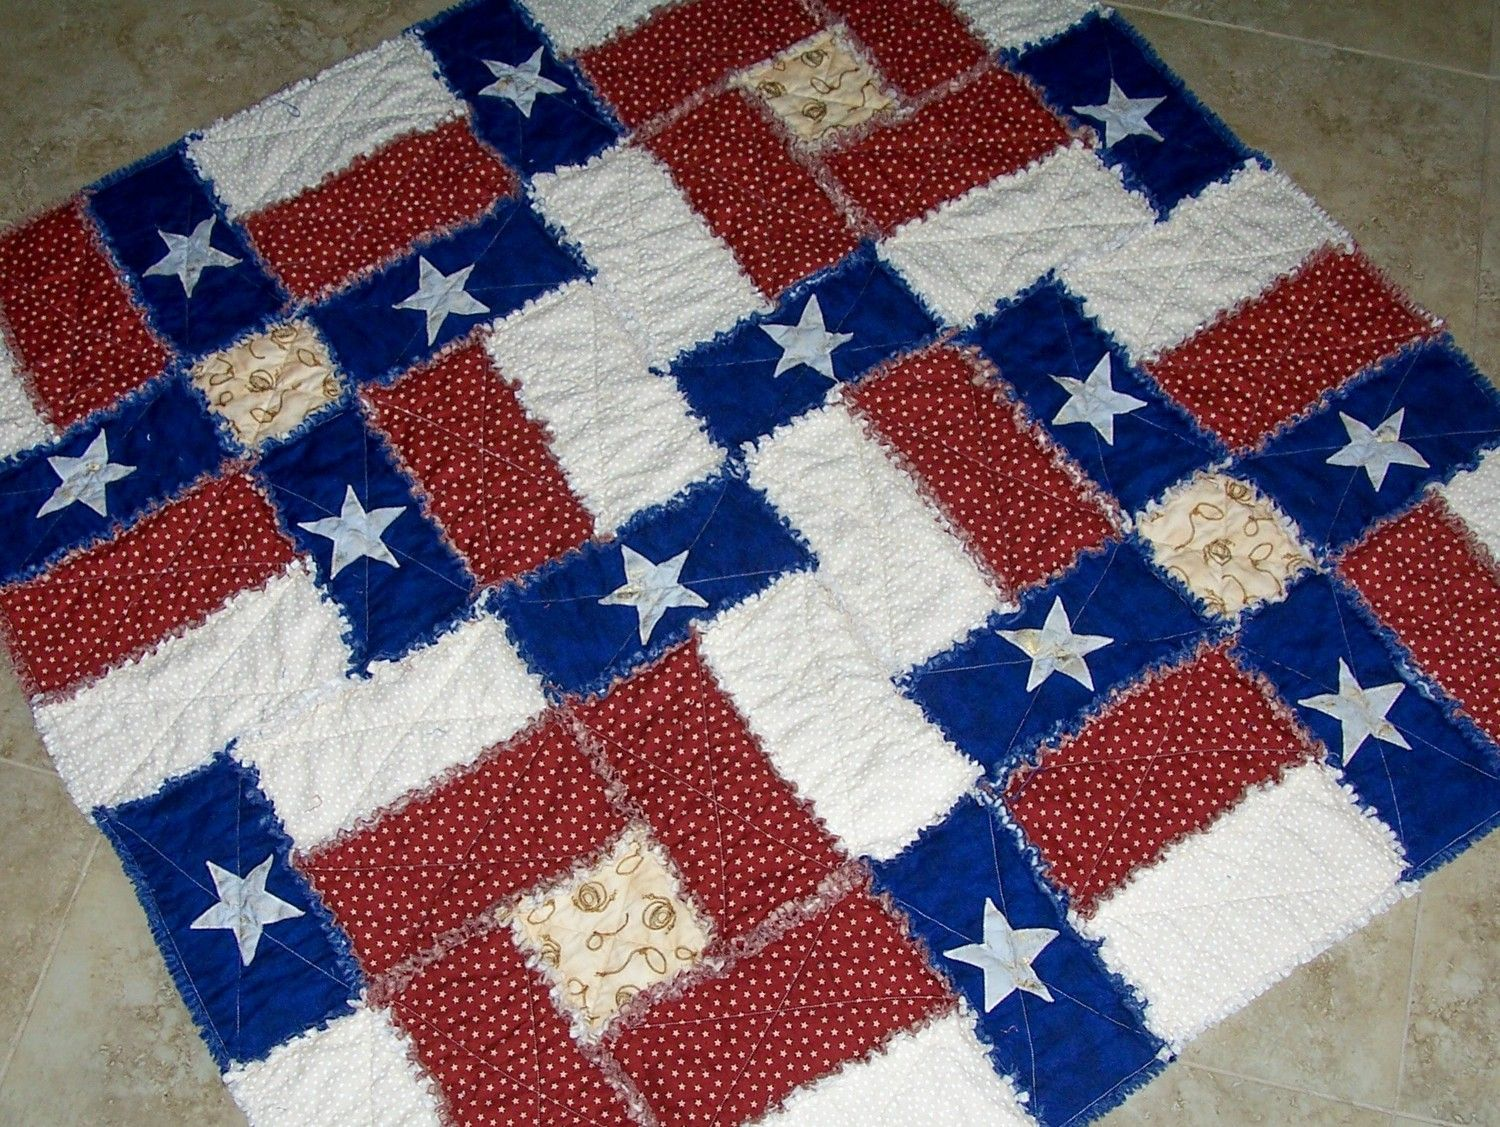 Texas Flag Rag Quilt Pattern Can Be Made With Regular Cottons Etsy Rag Quilt Rag Quilt Patterns Texas Quilt